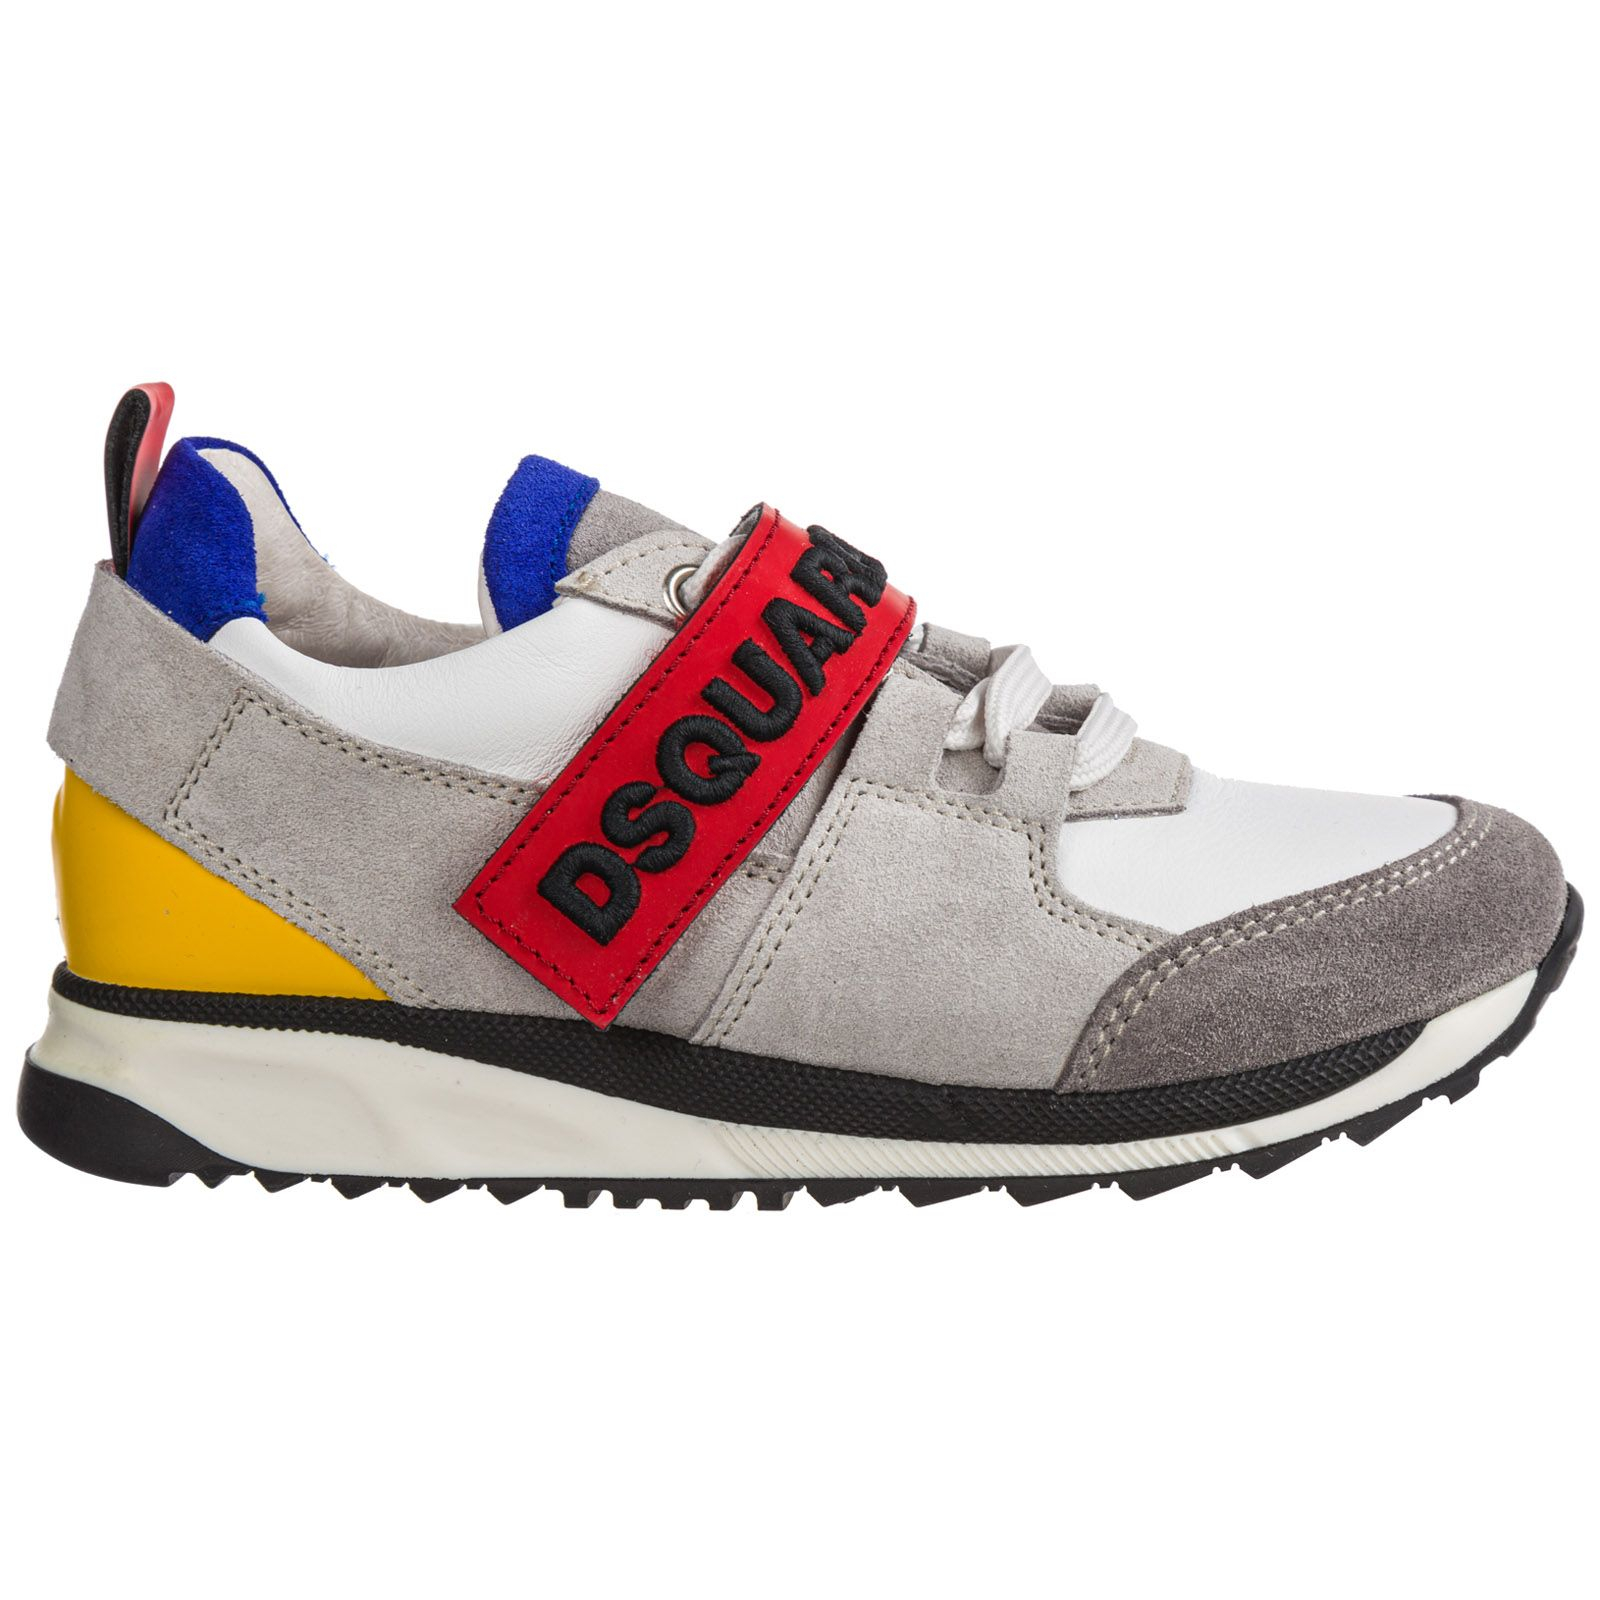 Dsquared2 Boys Shoes Baby Child